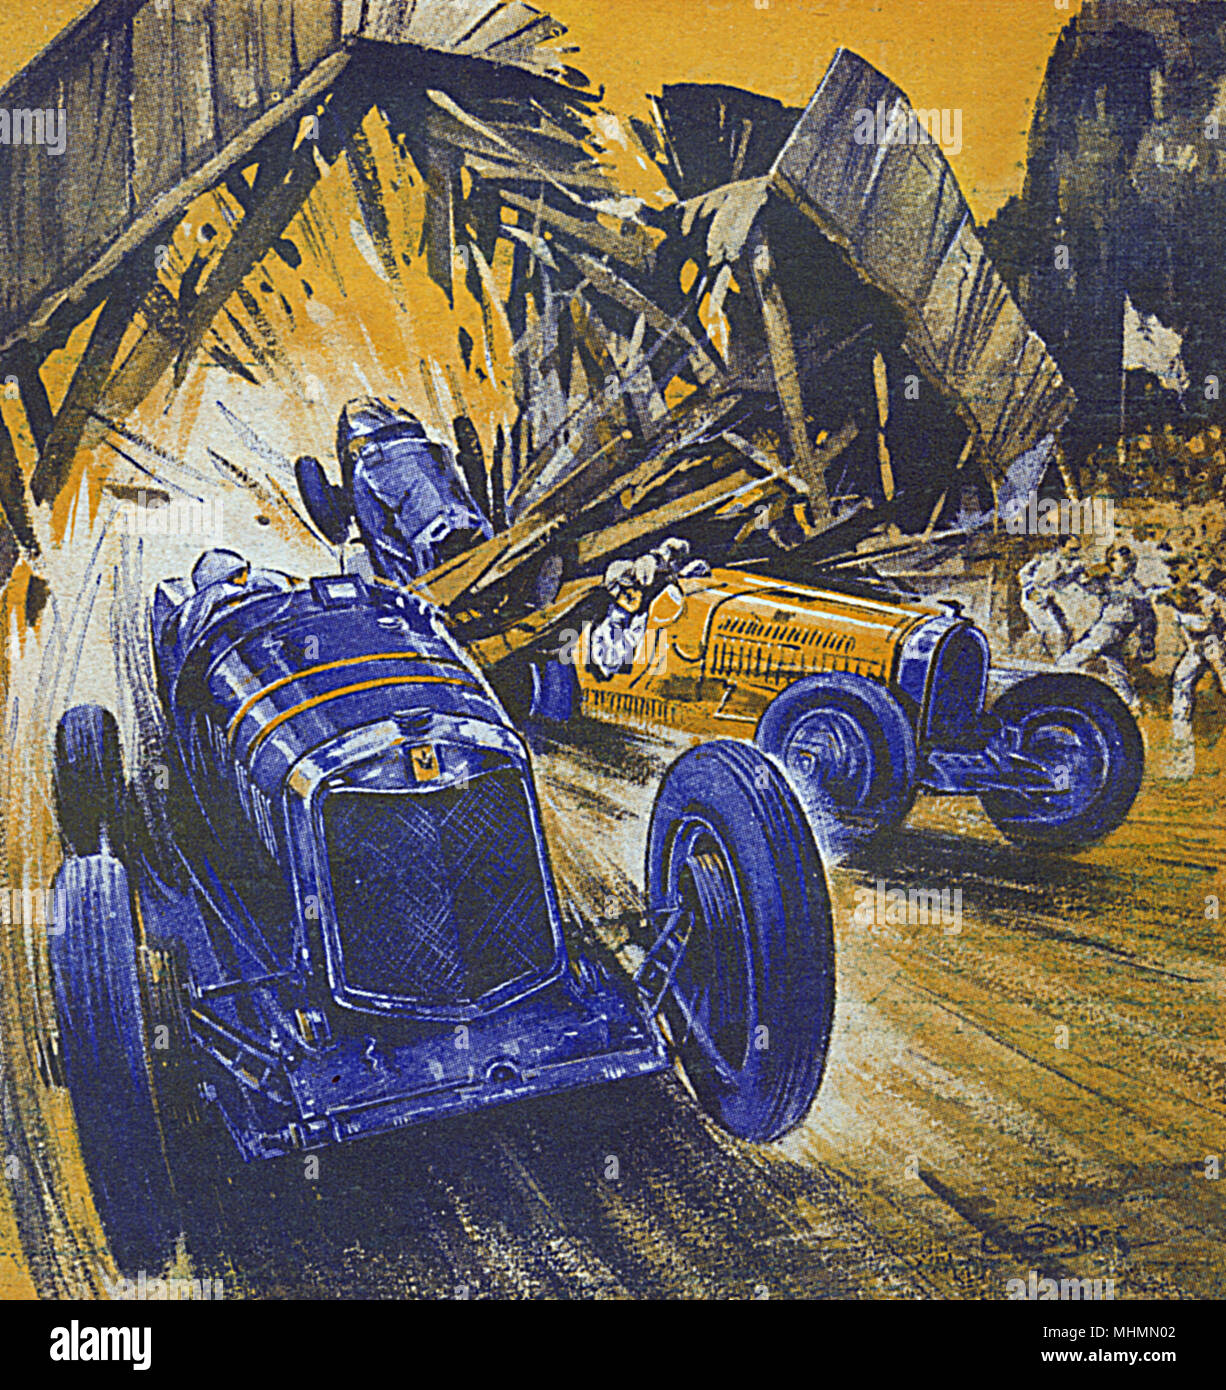 Racing cars smashing around a course but carrying on regardless.     Date: 1932 - Stock Image